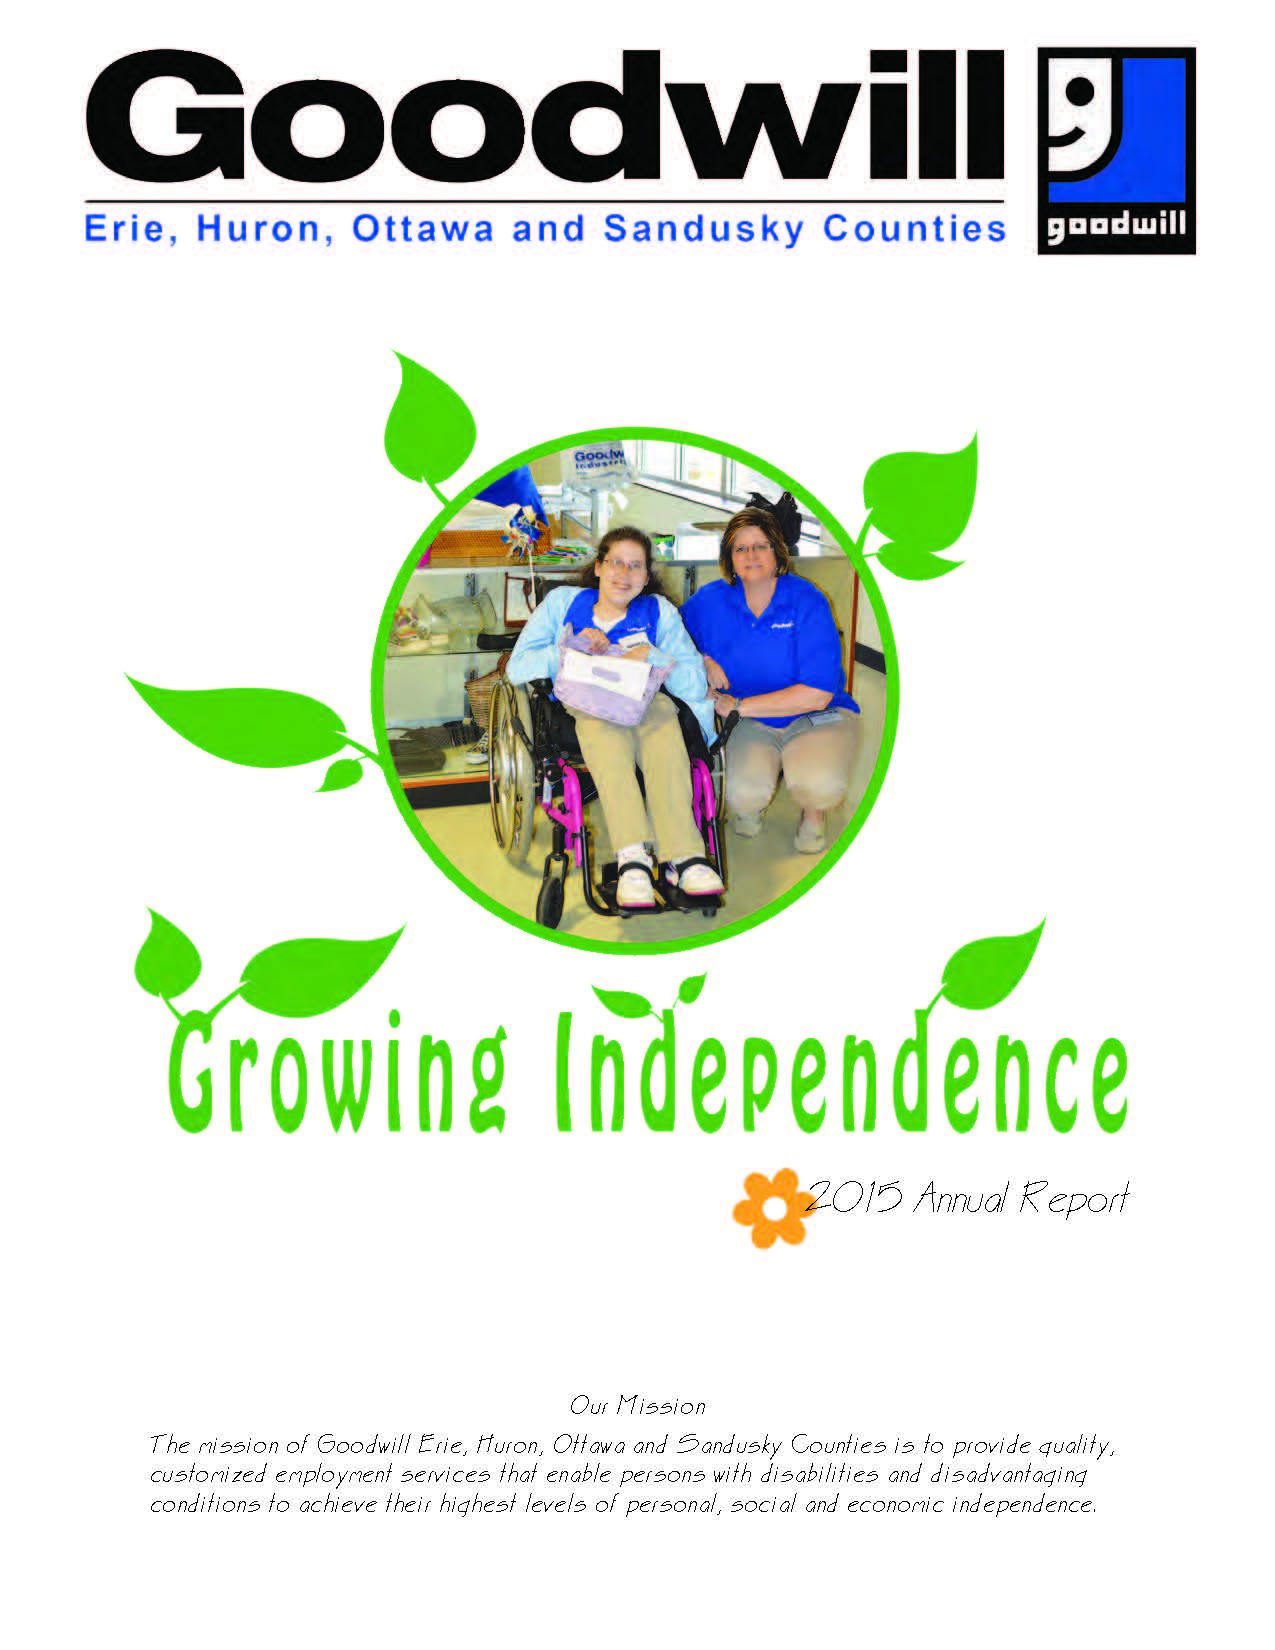 annual report goodwill of erie huron ottawa and sandusky counties